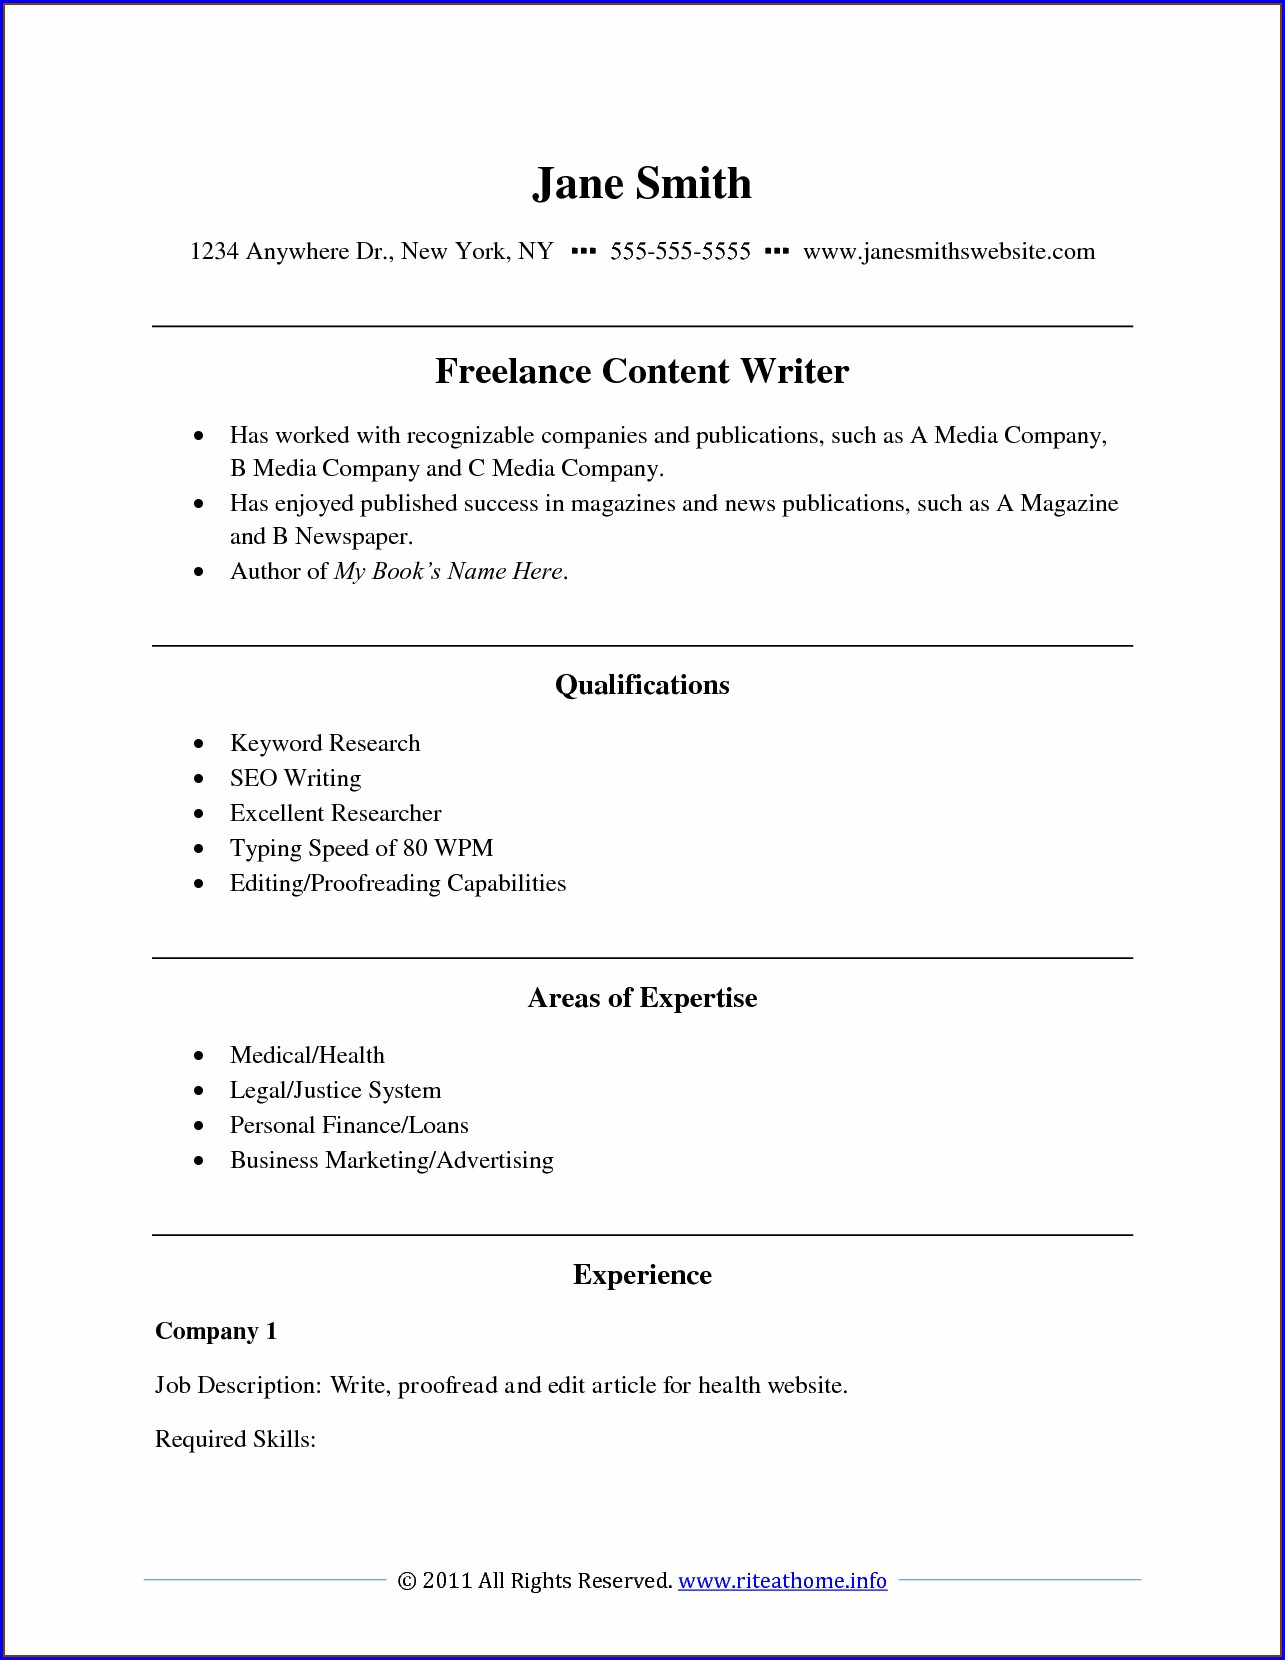 Free Professional Resume Writing Samples